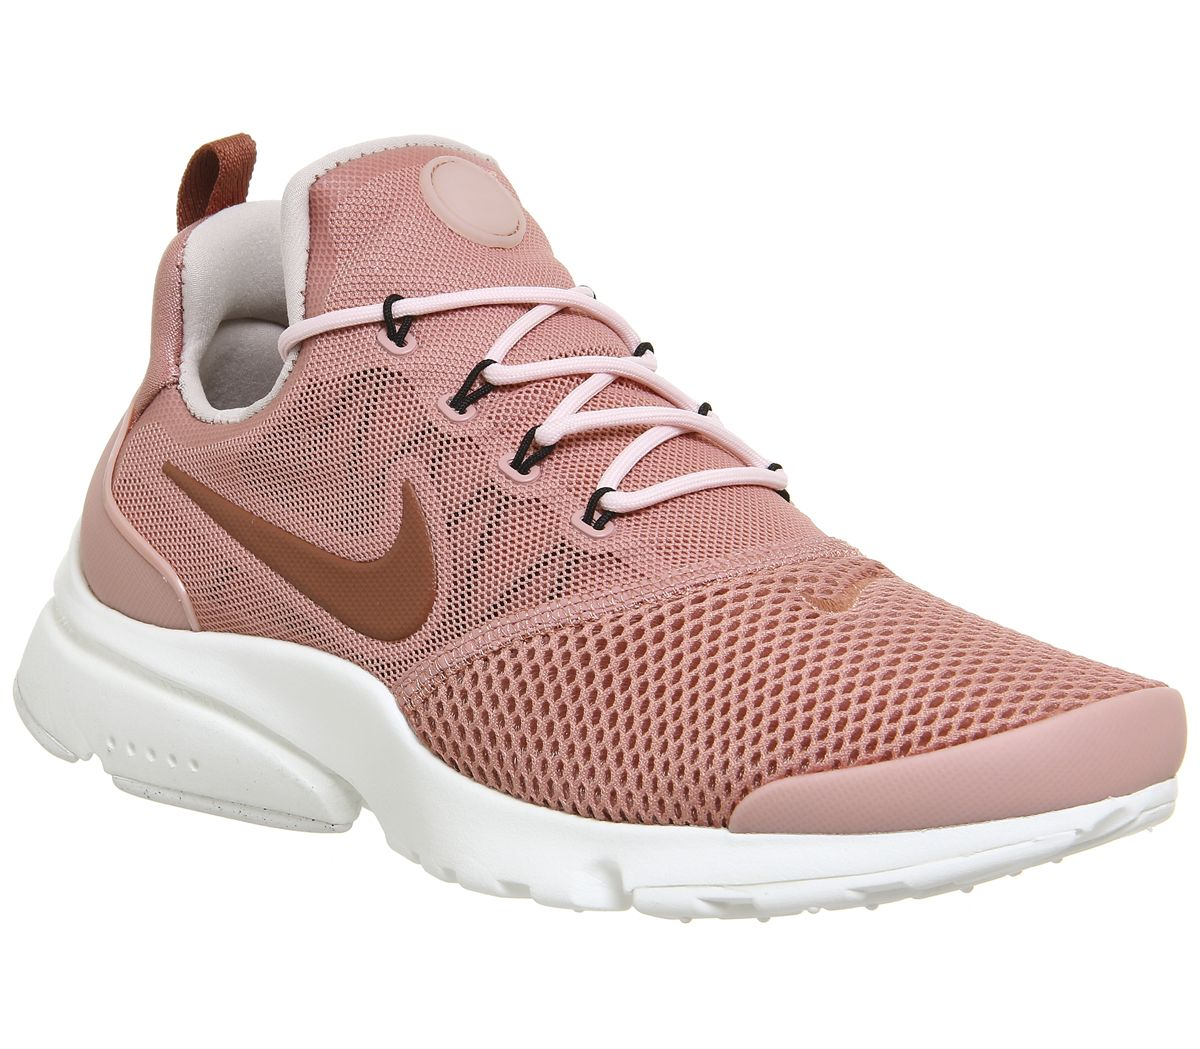 41eab028e2dd Nike Presto Fly Trainers Stardust Pink White - Hers trainers